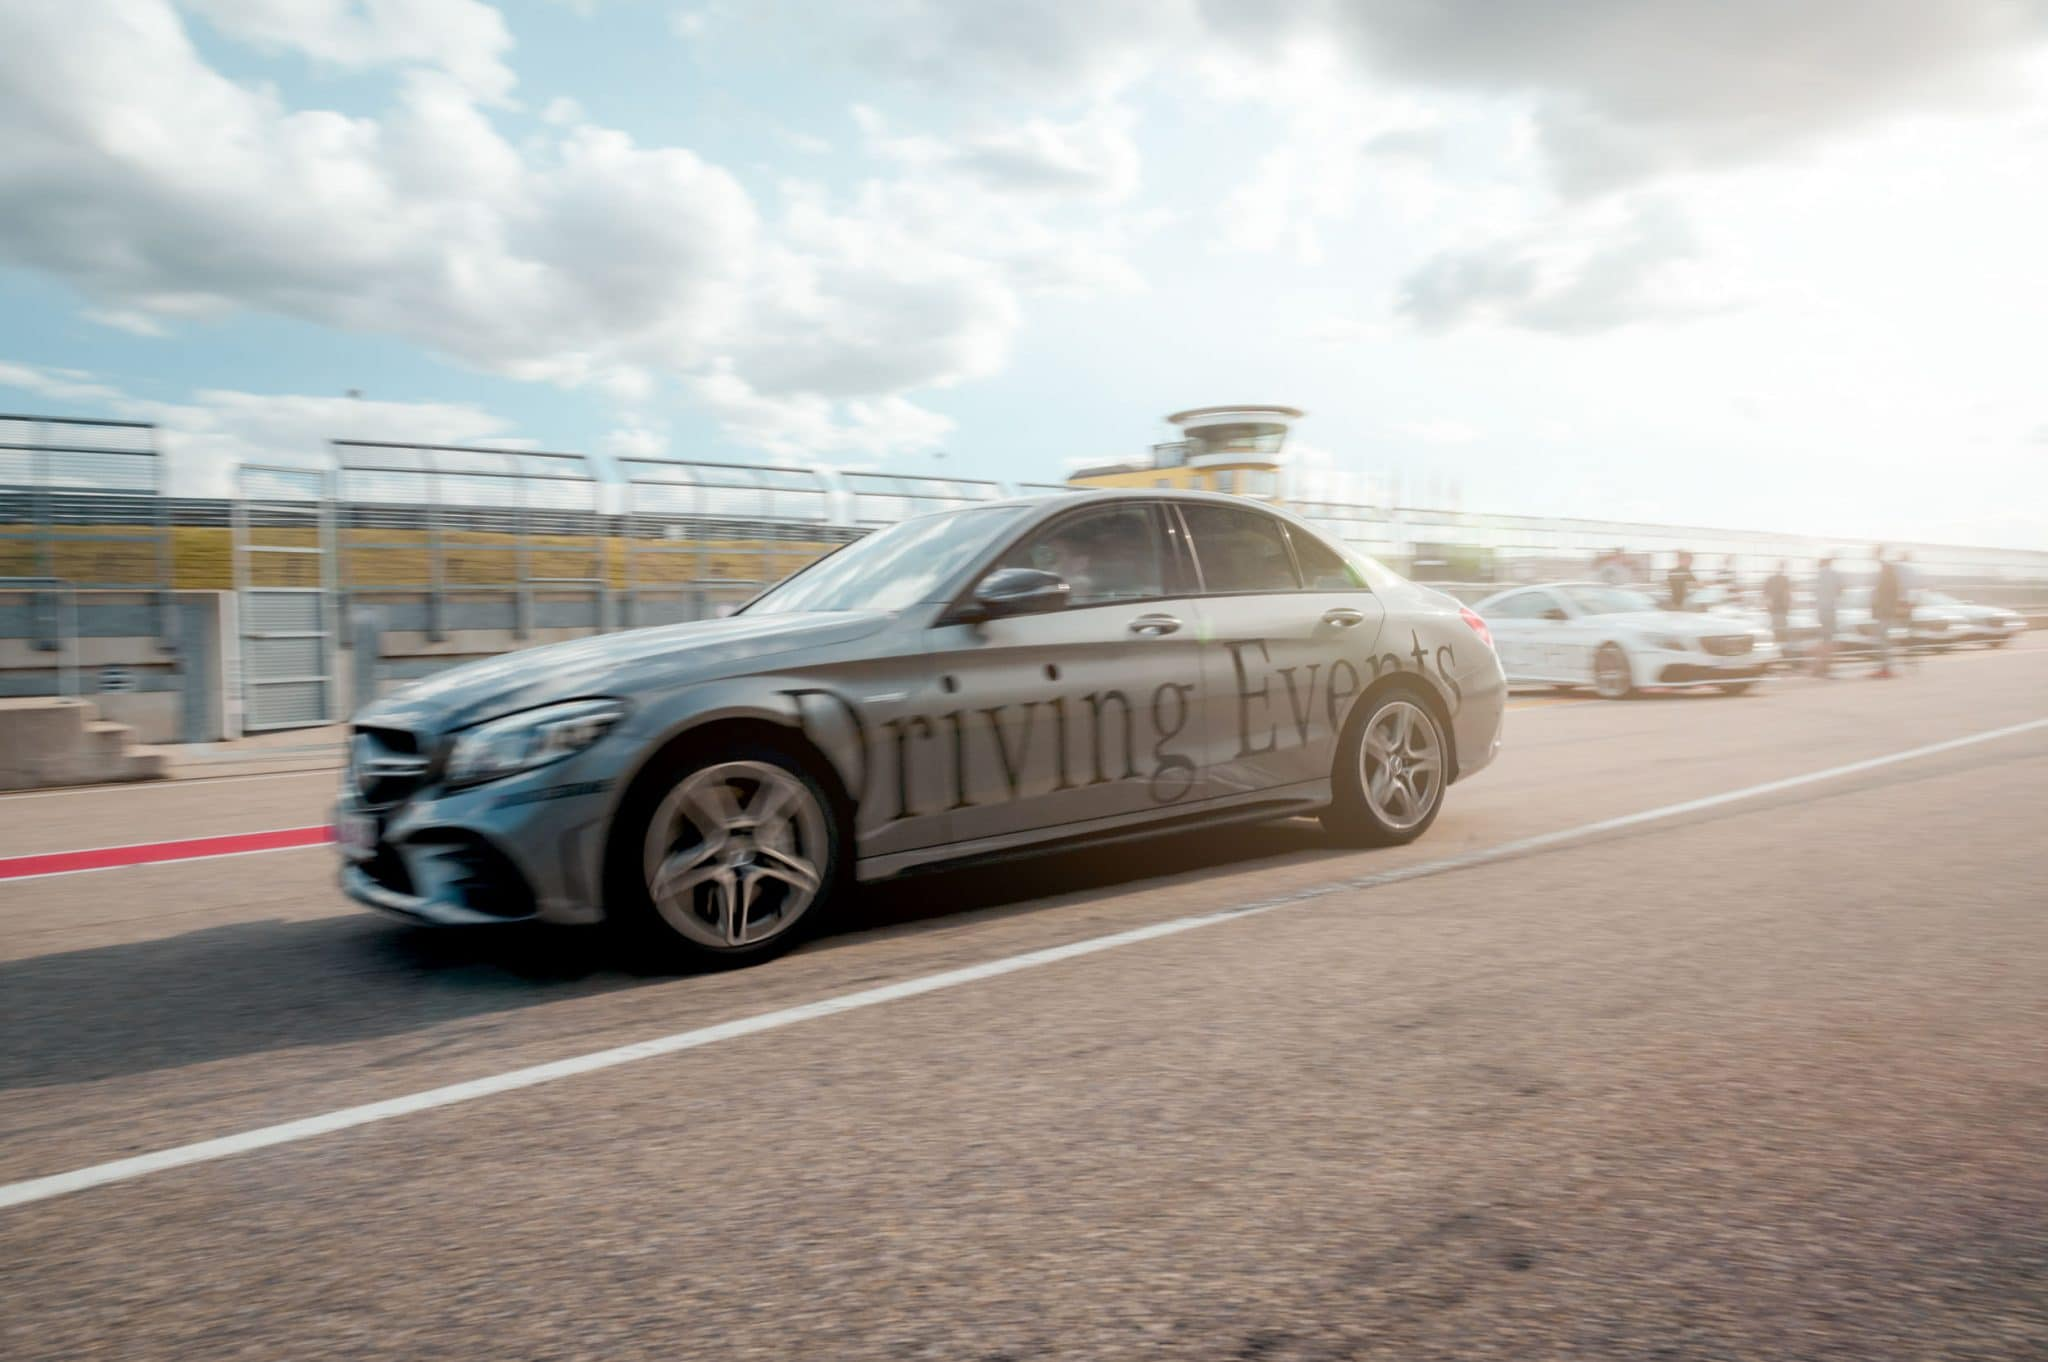 Mercedes Benz Driving Events Sachsenring 11. September 2020 460 scaled |